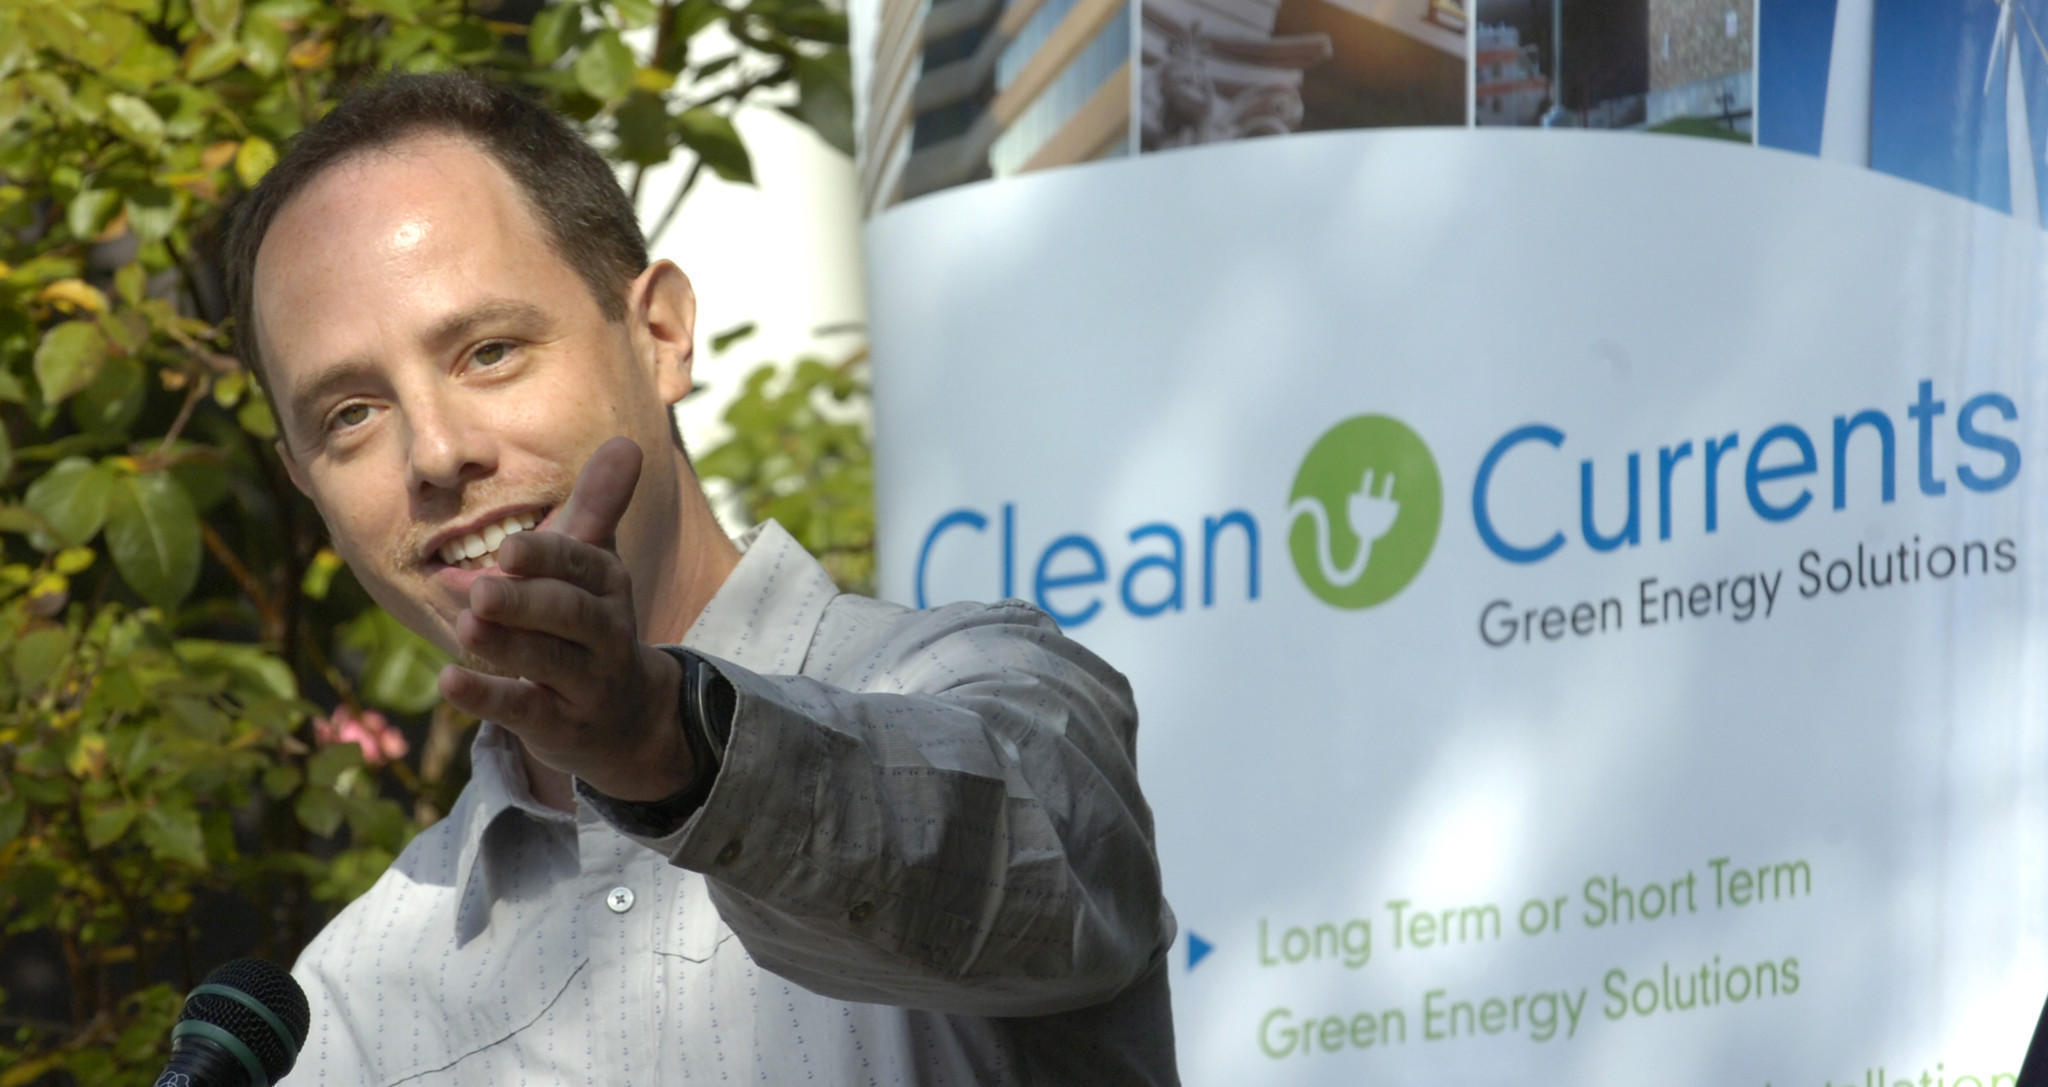 Gary Skulknik was the co-founder and president of Clean Currents.